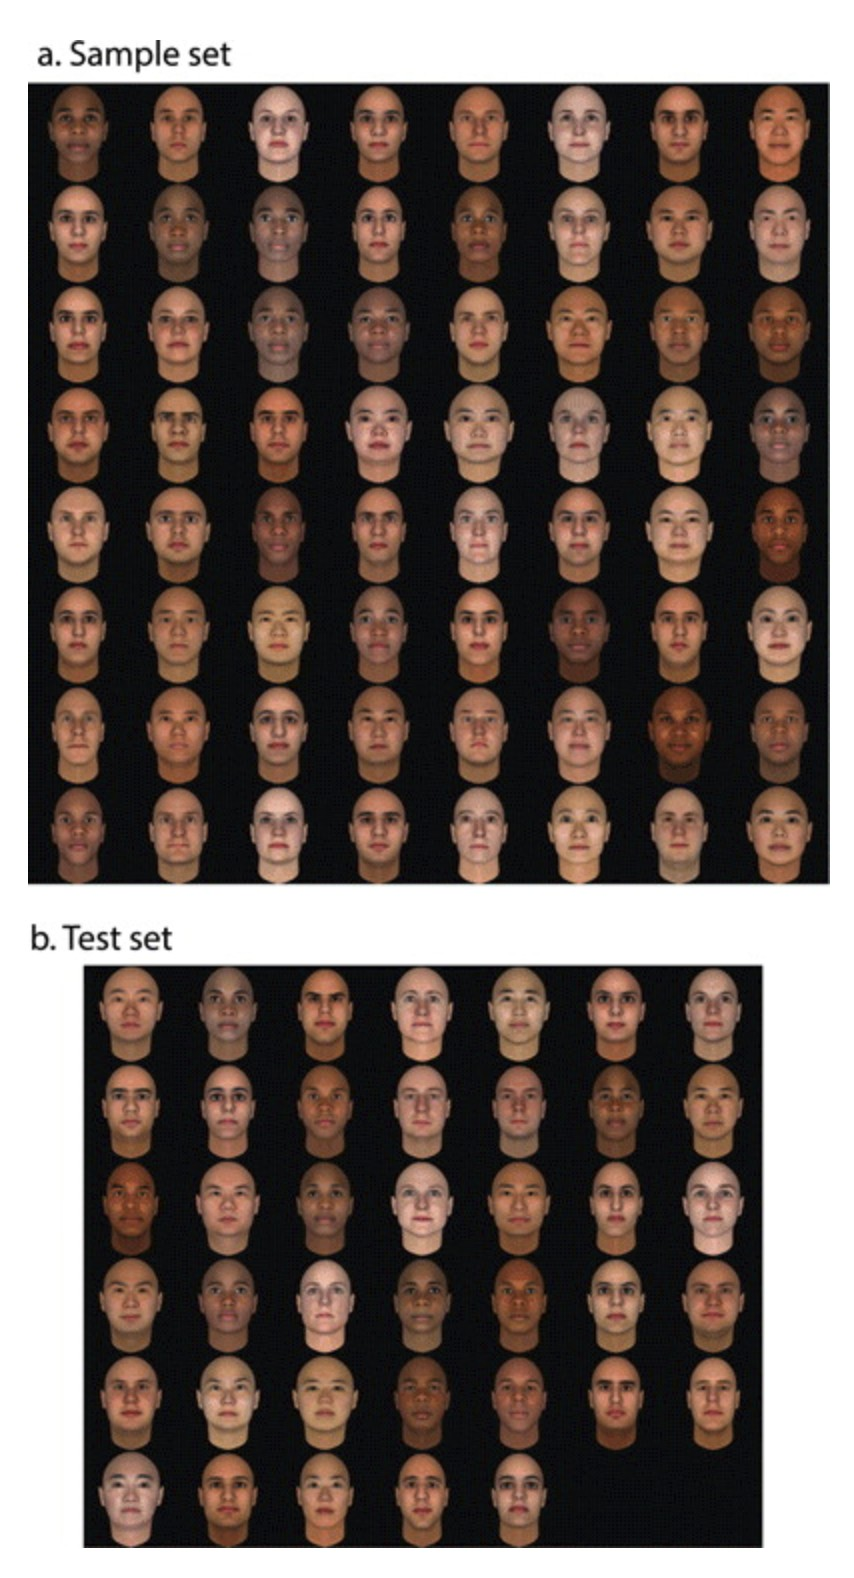 Face sets used to examine the tensor decomposition algorithm. (a) Sample set. Shows 64 out of 128 faces serving as input to the algorithm to create the tensorfaces. (b) Test set: A different set of faces to evaluate properties of the tensorfaces.